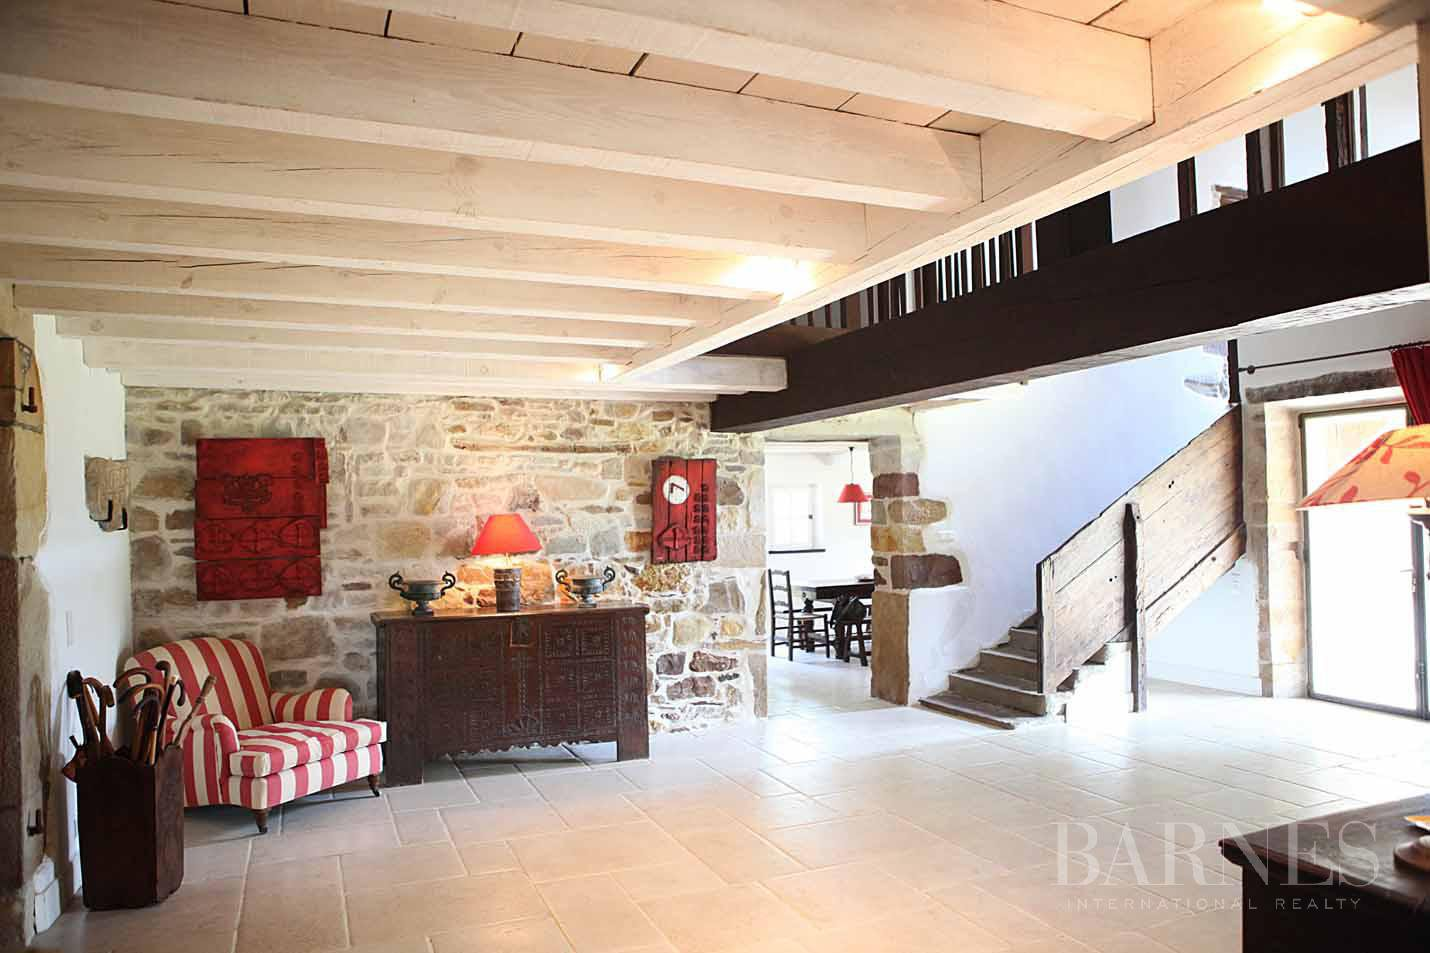 SARE, 20 MINUTES FROM SAINT JEAN DE LUZ, BASQUE STYLE FARMHOUSE WITH HEATED POOL, PANORAMIC MOUNTAIN VIEW picture 9